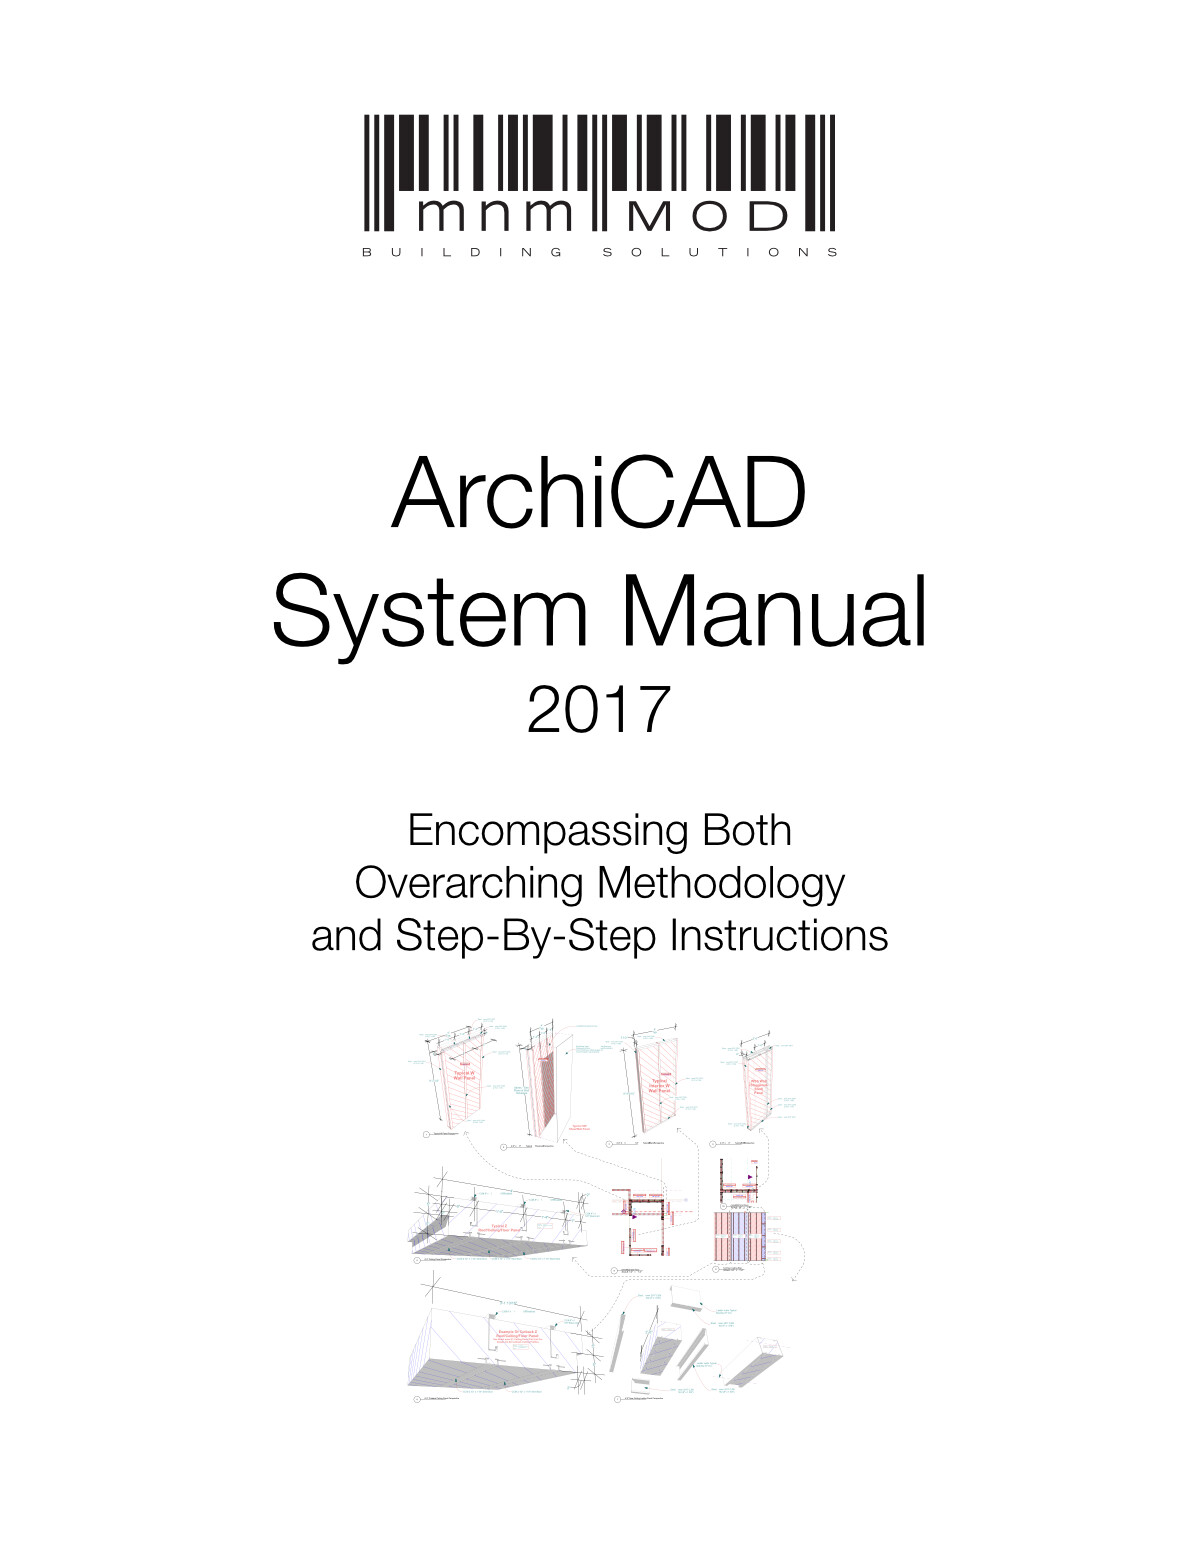 Old Work - Excerpt only of technical documentation of new mnmMOD system design tools, new design approach and new documentation [all my work]